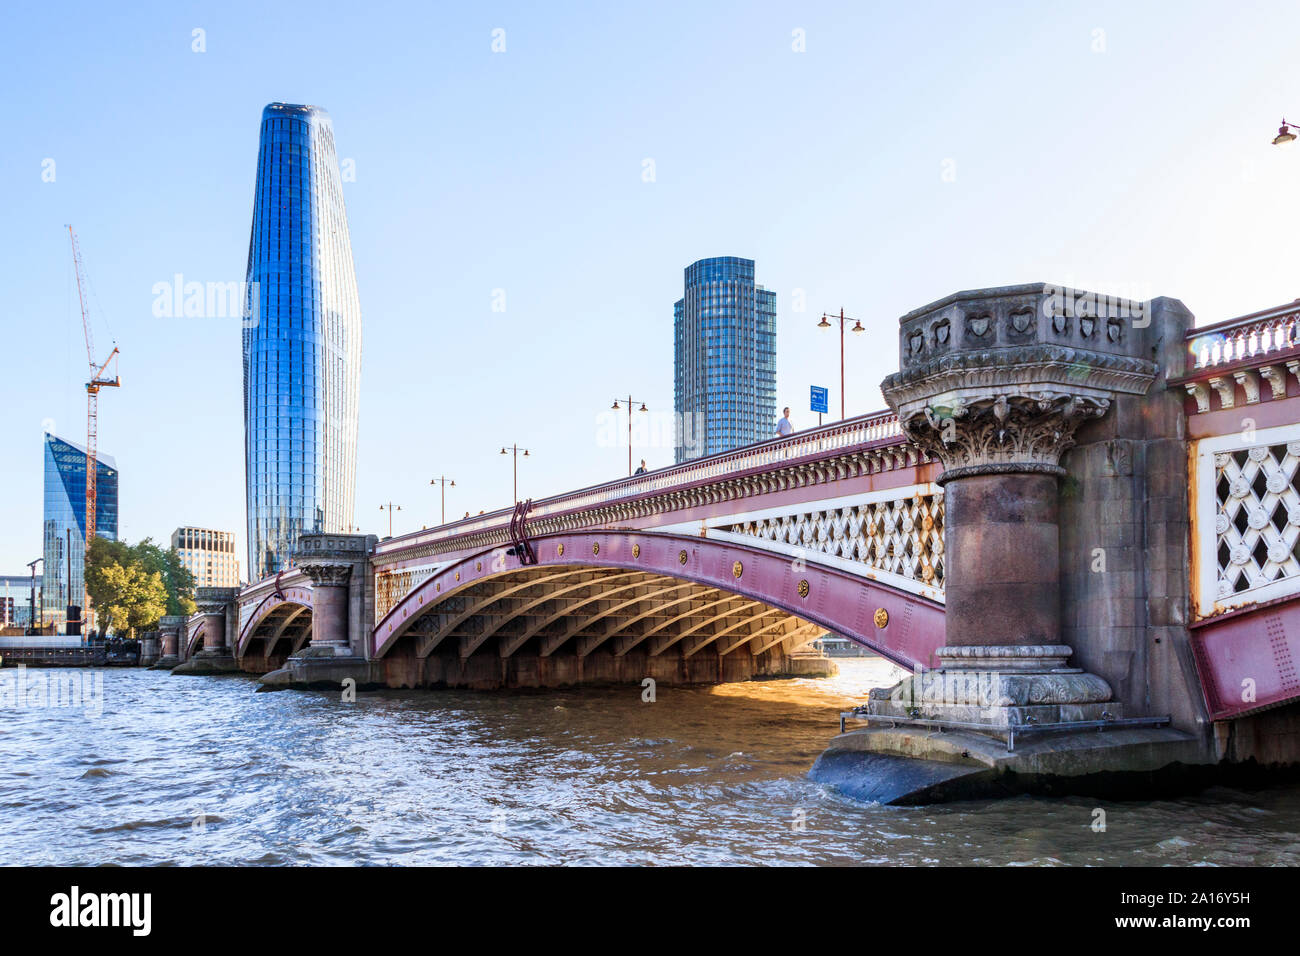 Blackfriars Bridge, a road and pedestrian bridge over the River Thames, The Vase (No. 1 Blackfriars) on its south side, London, UK Stock Photo